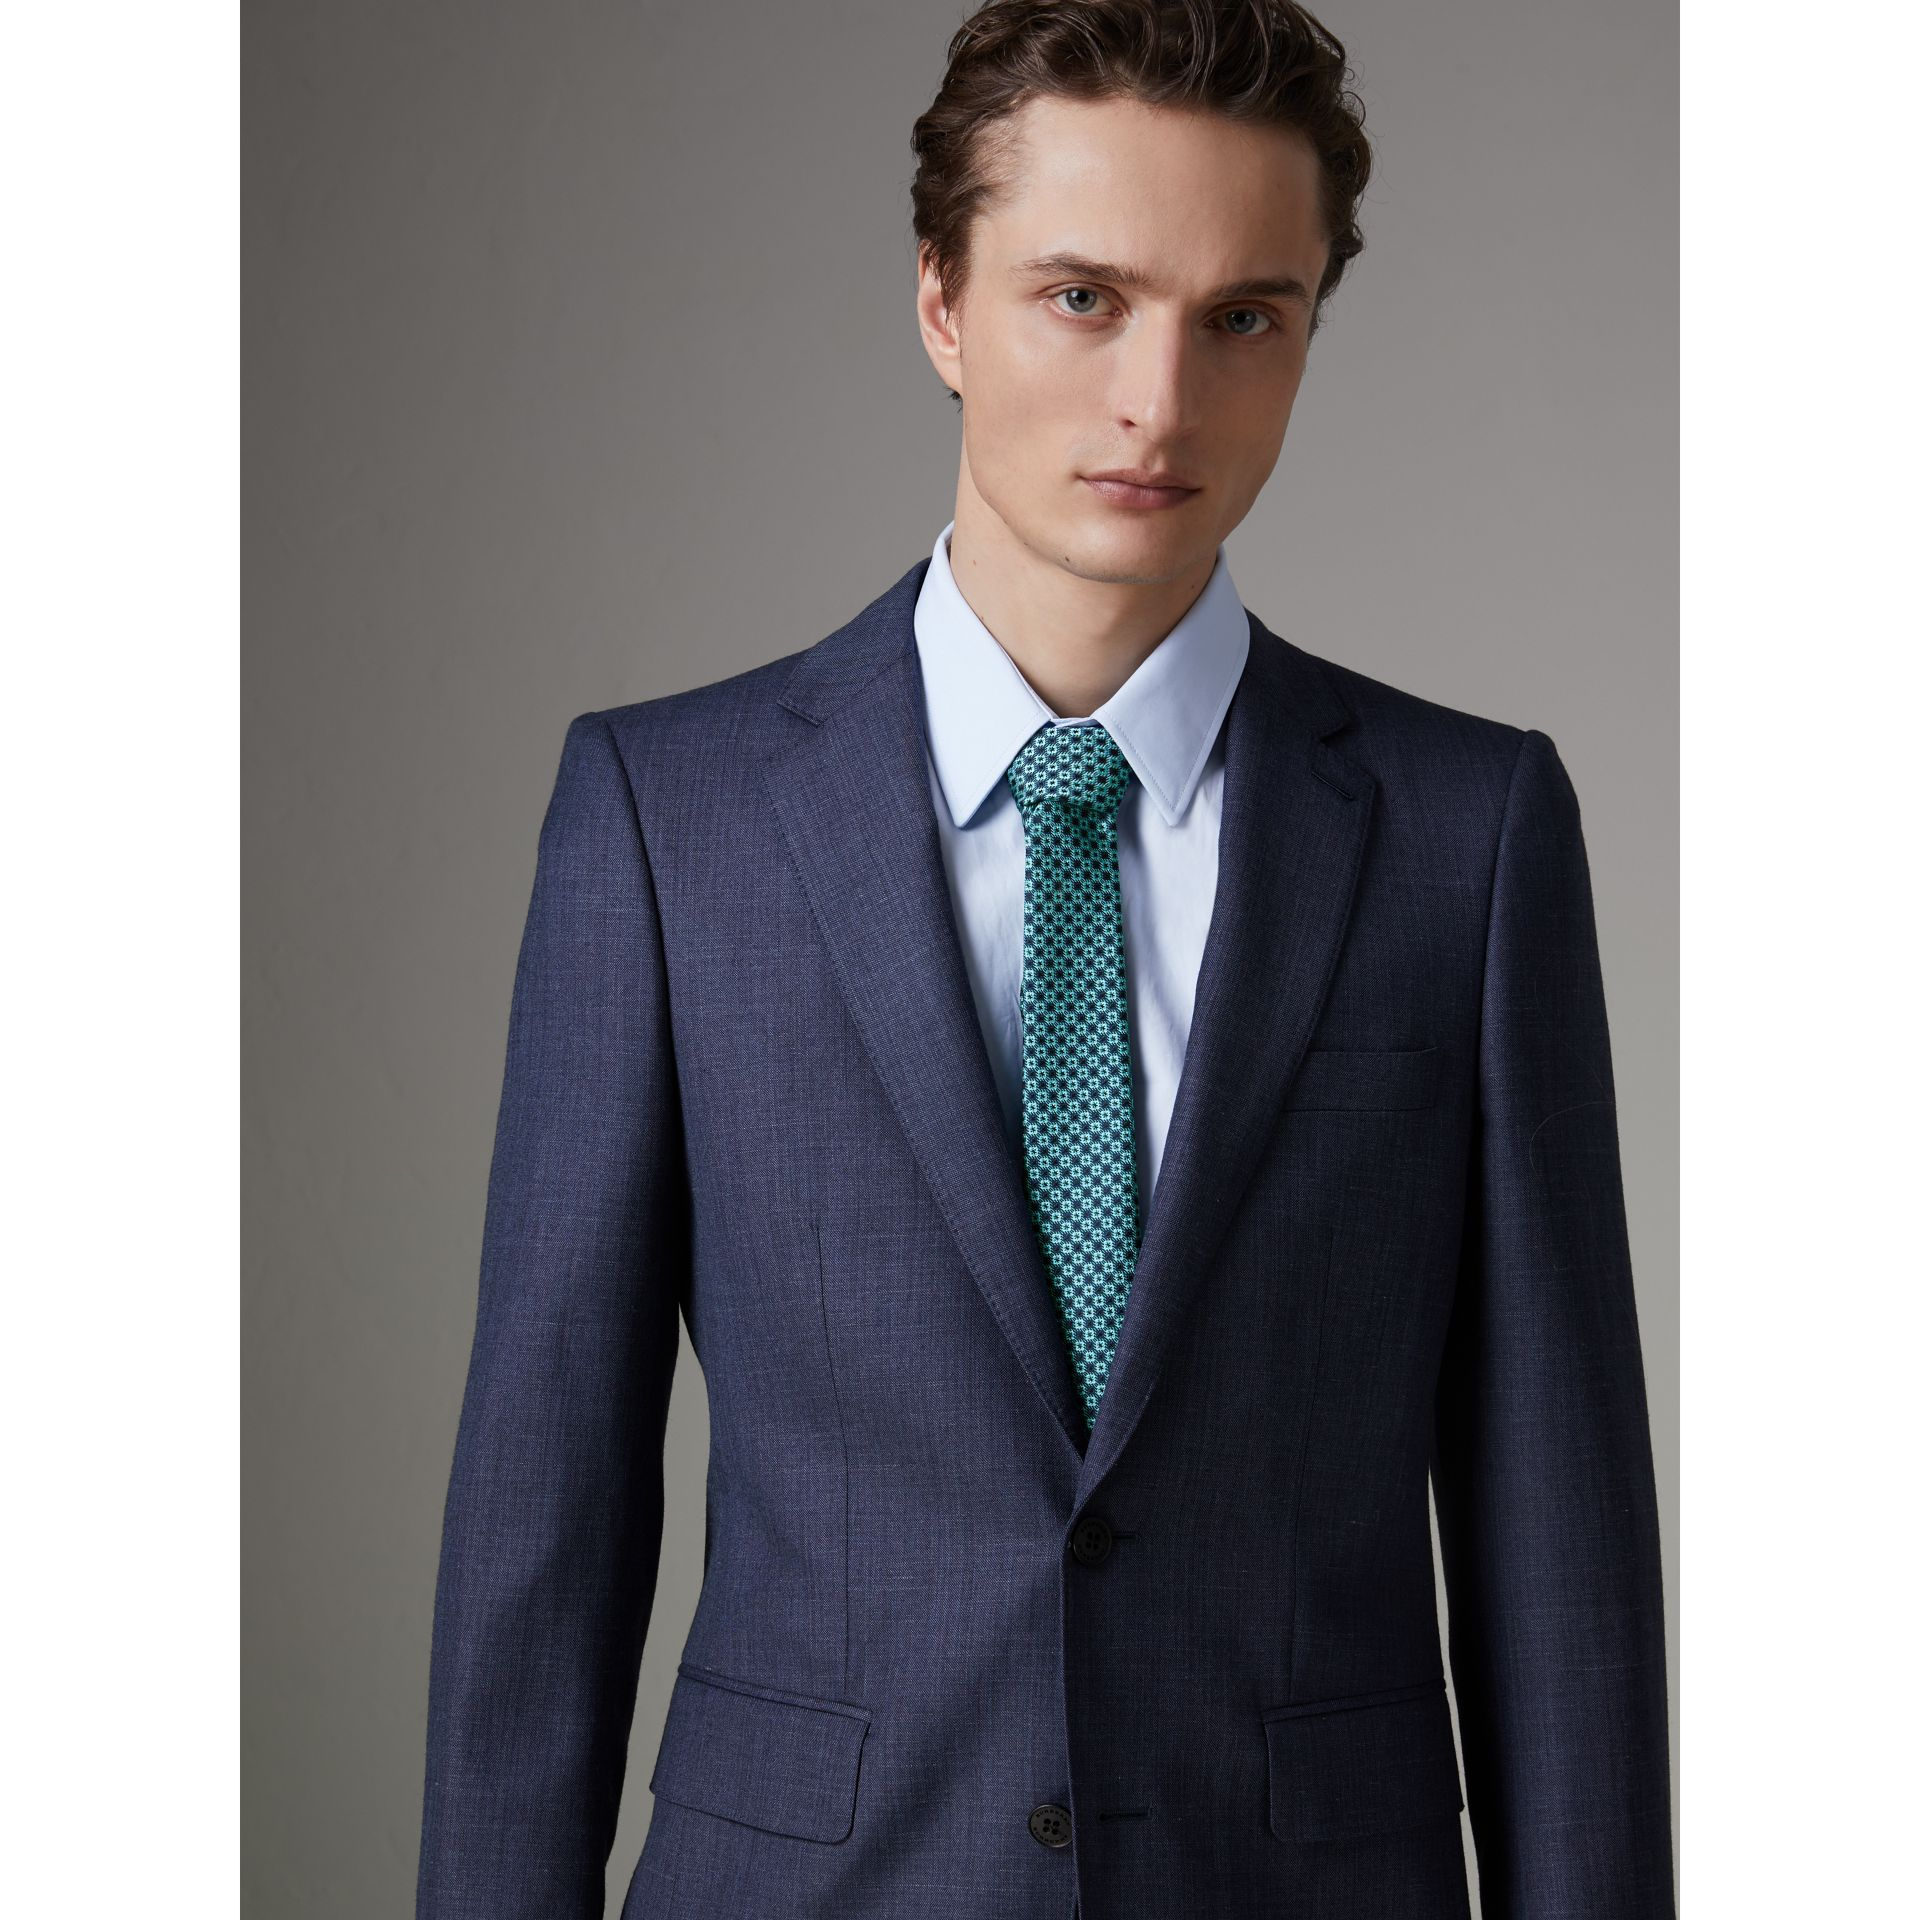 Slim Cut Daisy Silk Jacquard Tie in Turquoise - Men | Burberry - gallery image 2